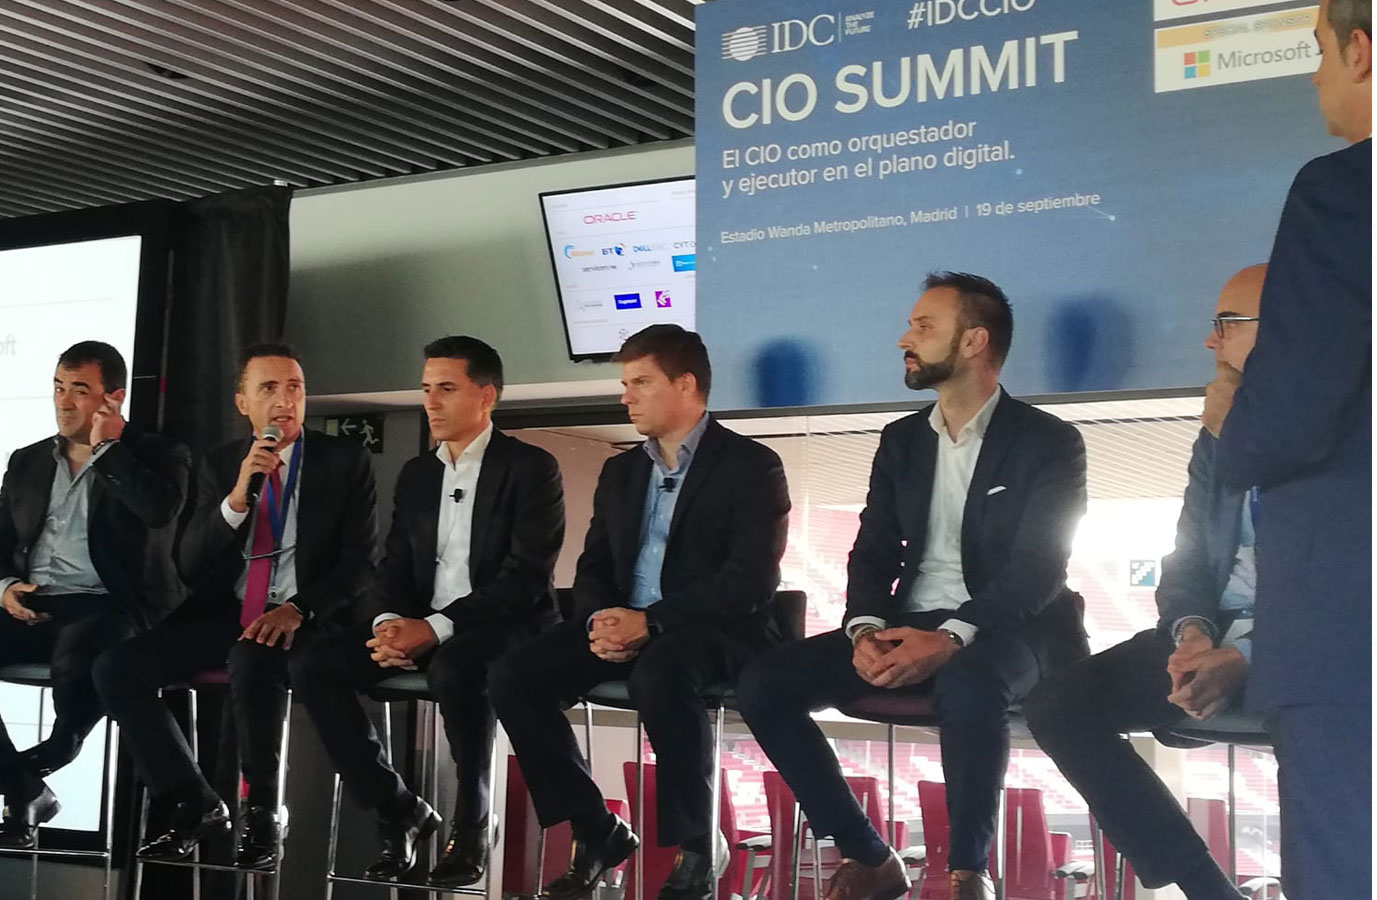 Softeng participa en IDC CIO SUMMIT